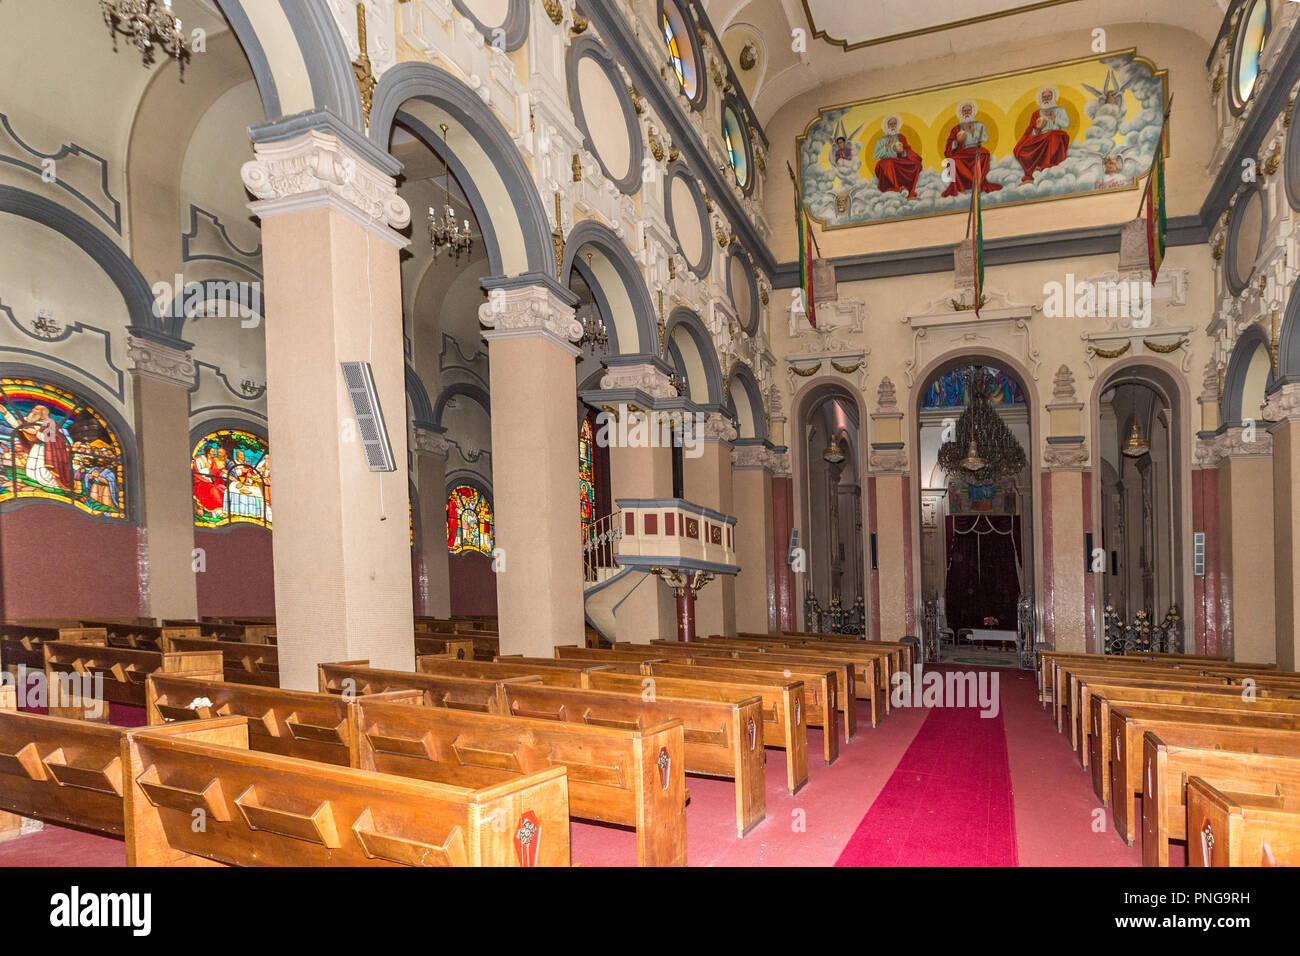 Interior, Holy Trinity Cathedral, known in Amharic as Kidist Selassie, Ethiopian Orthodox Tewahedo Church, resting place for  Emperor Haile Selassie + - Stock Image